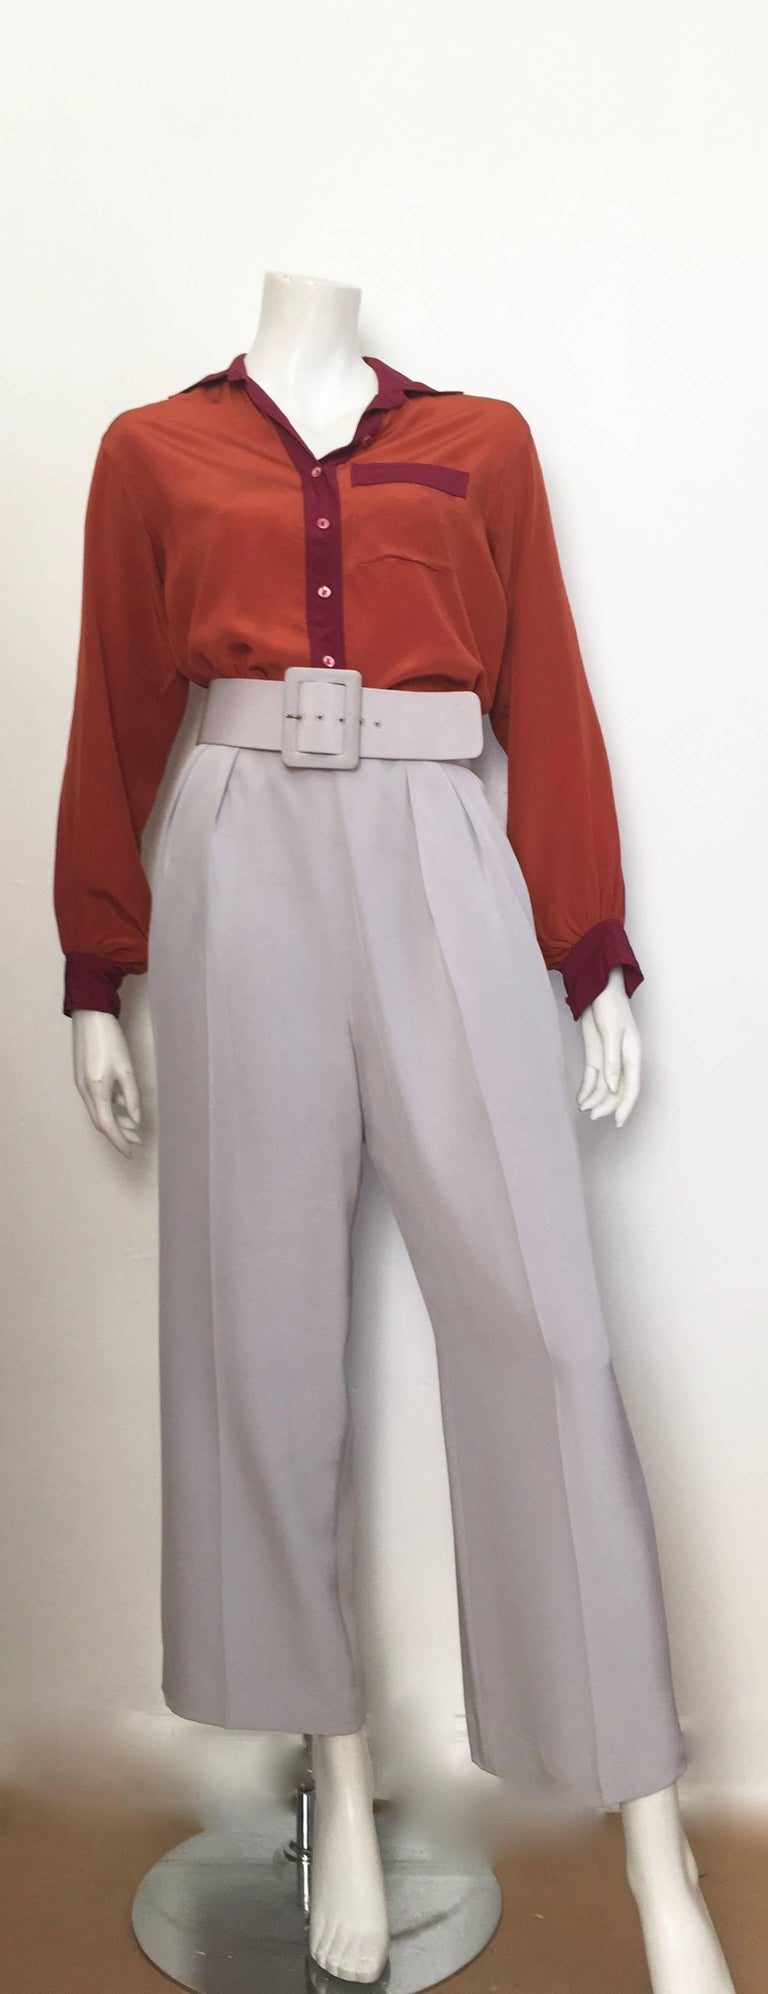 Oscar de la Renta silk silver grey pleated pants with pockets & belt is labeled a size 8 but fits a size 6.  The waist is 29